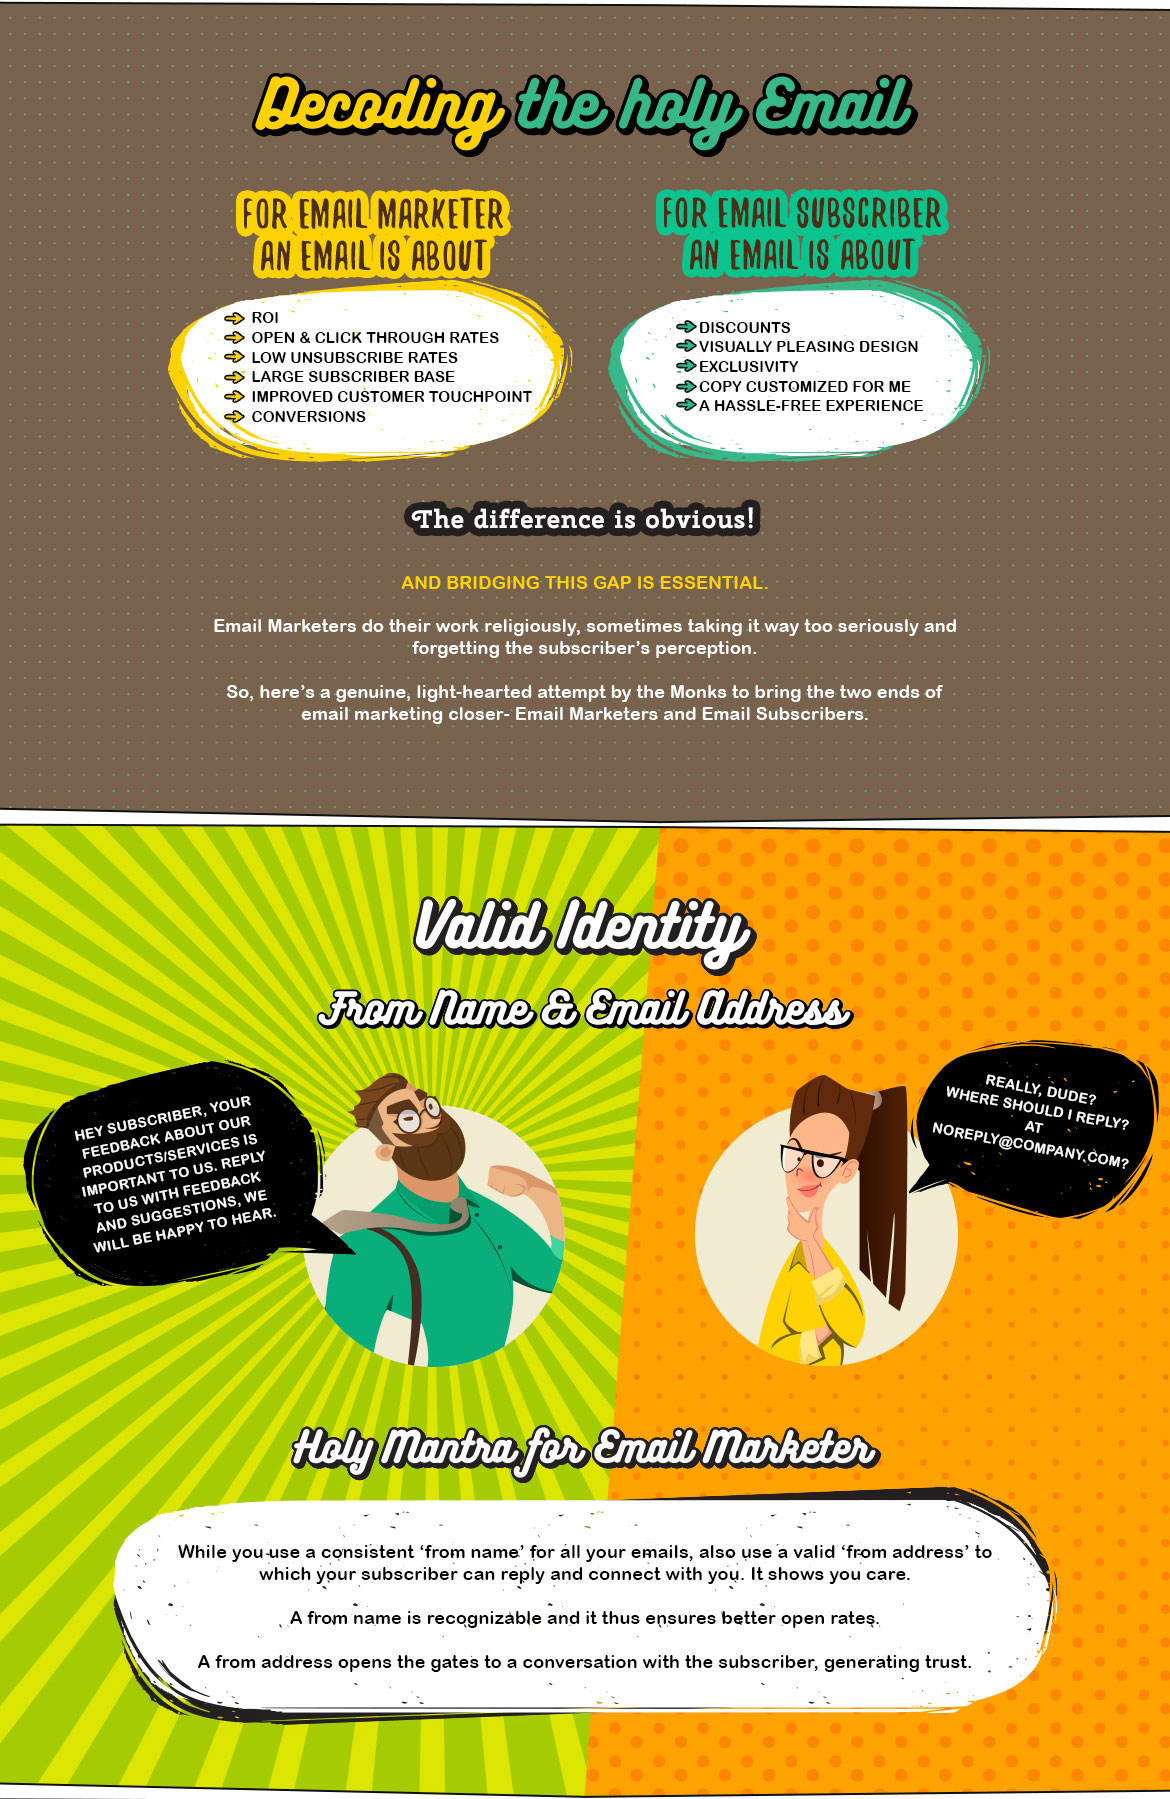 EmailMonks infographic 2